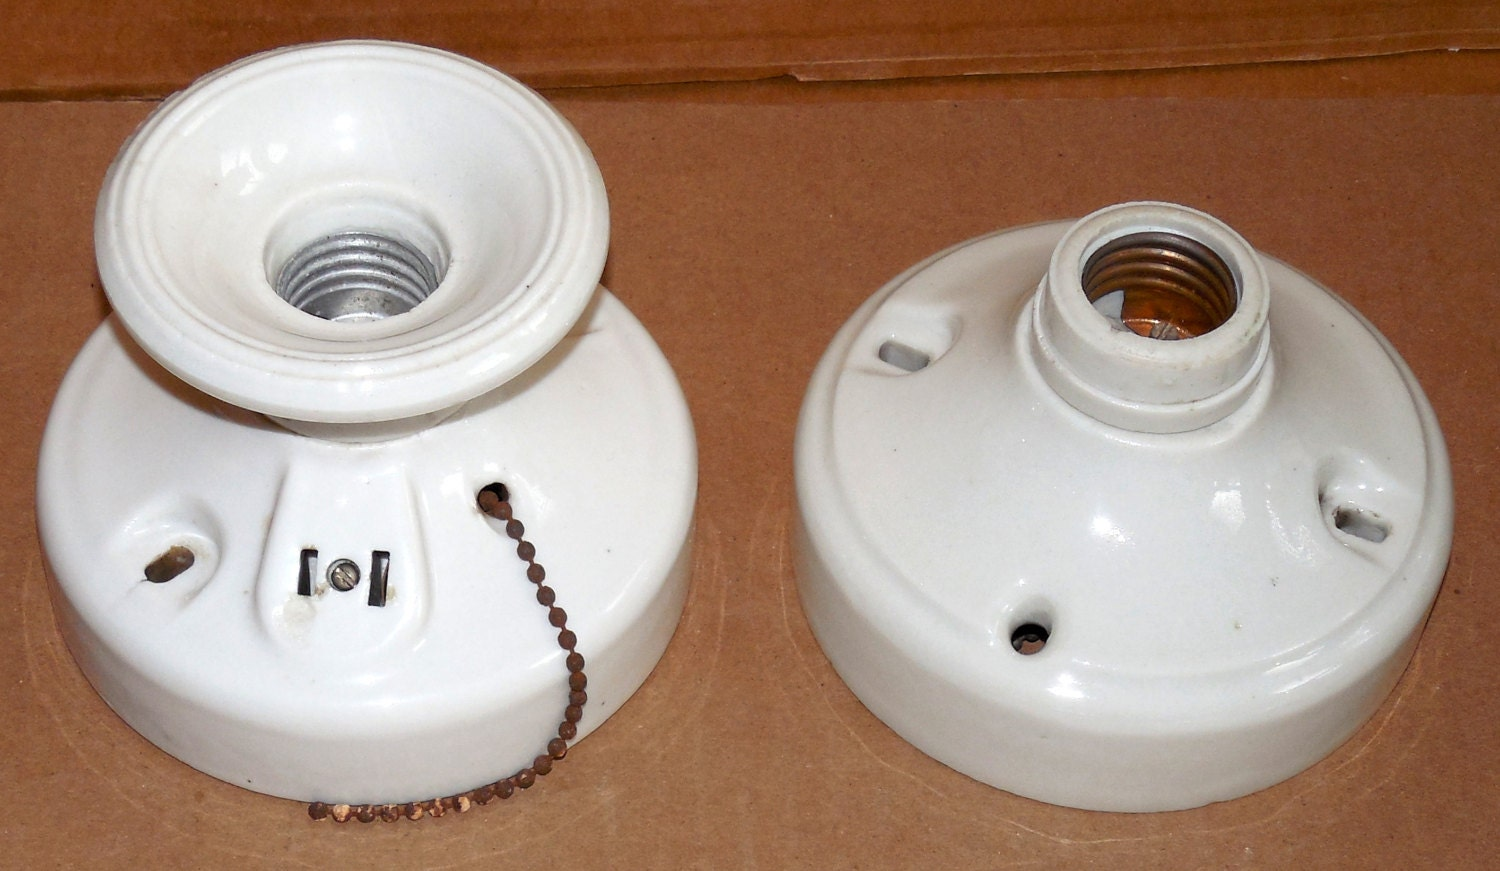 Vintage ceramic ceiling lights : Vintage porcelain ceiling light fixtures ceramic